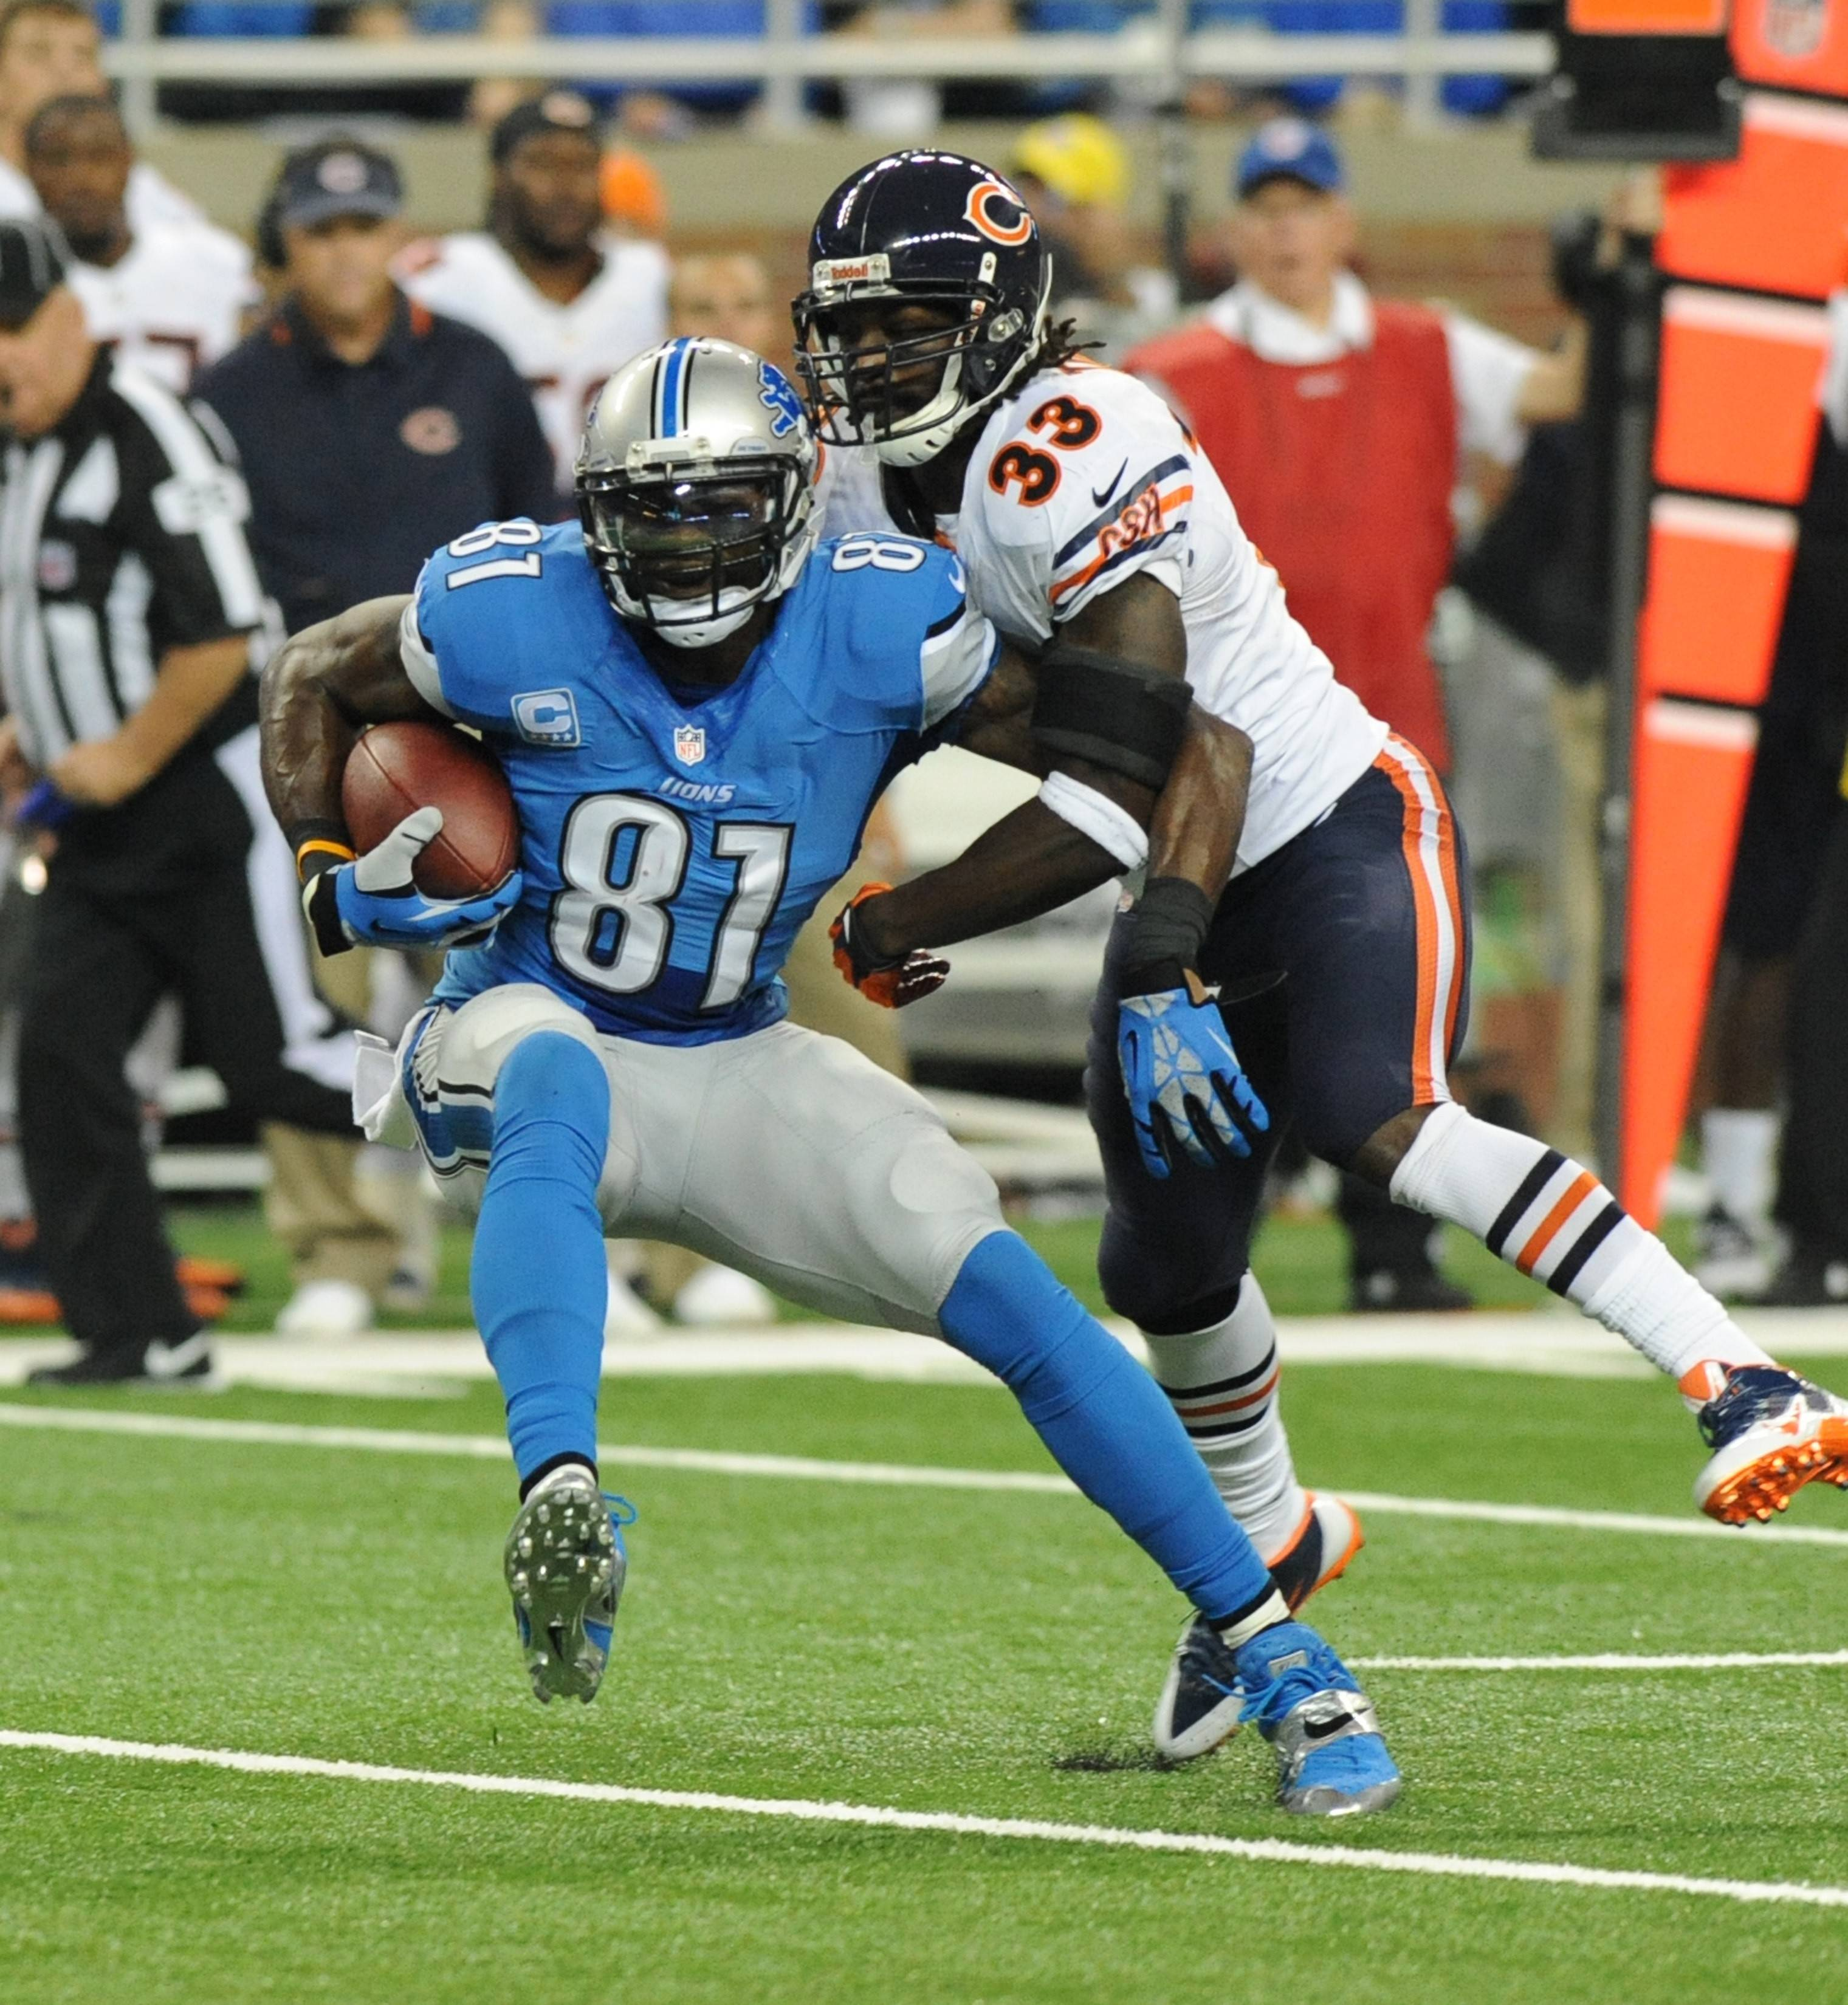 The Chicago Bears and the Lions will meet in Detroit for a Thanksgiving game this season.